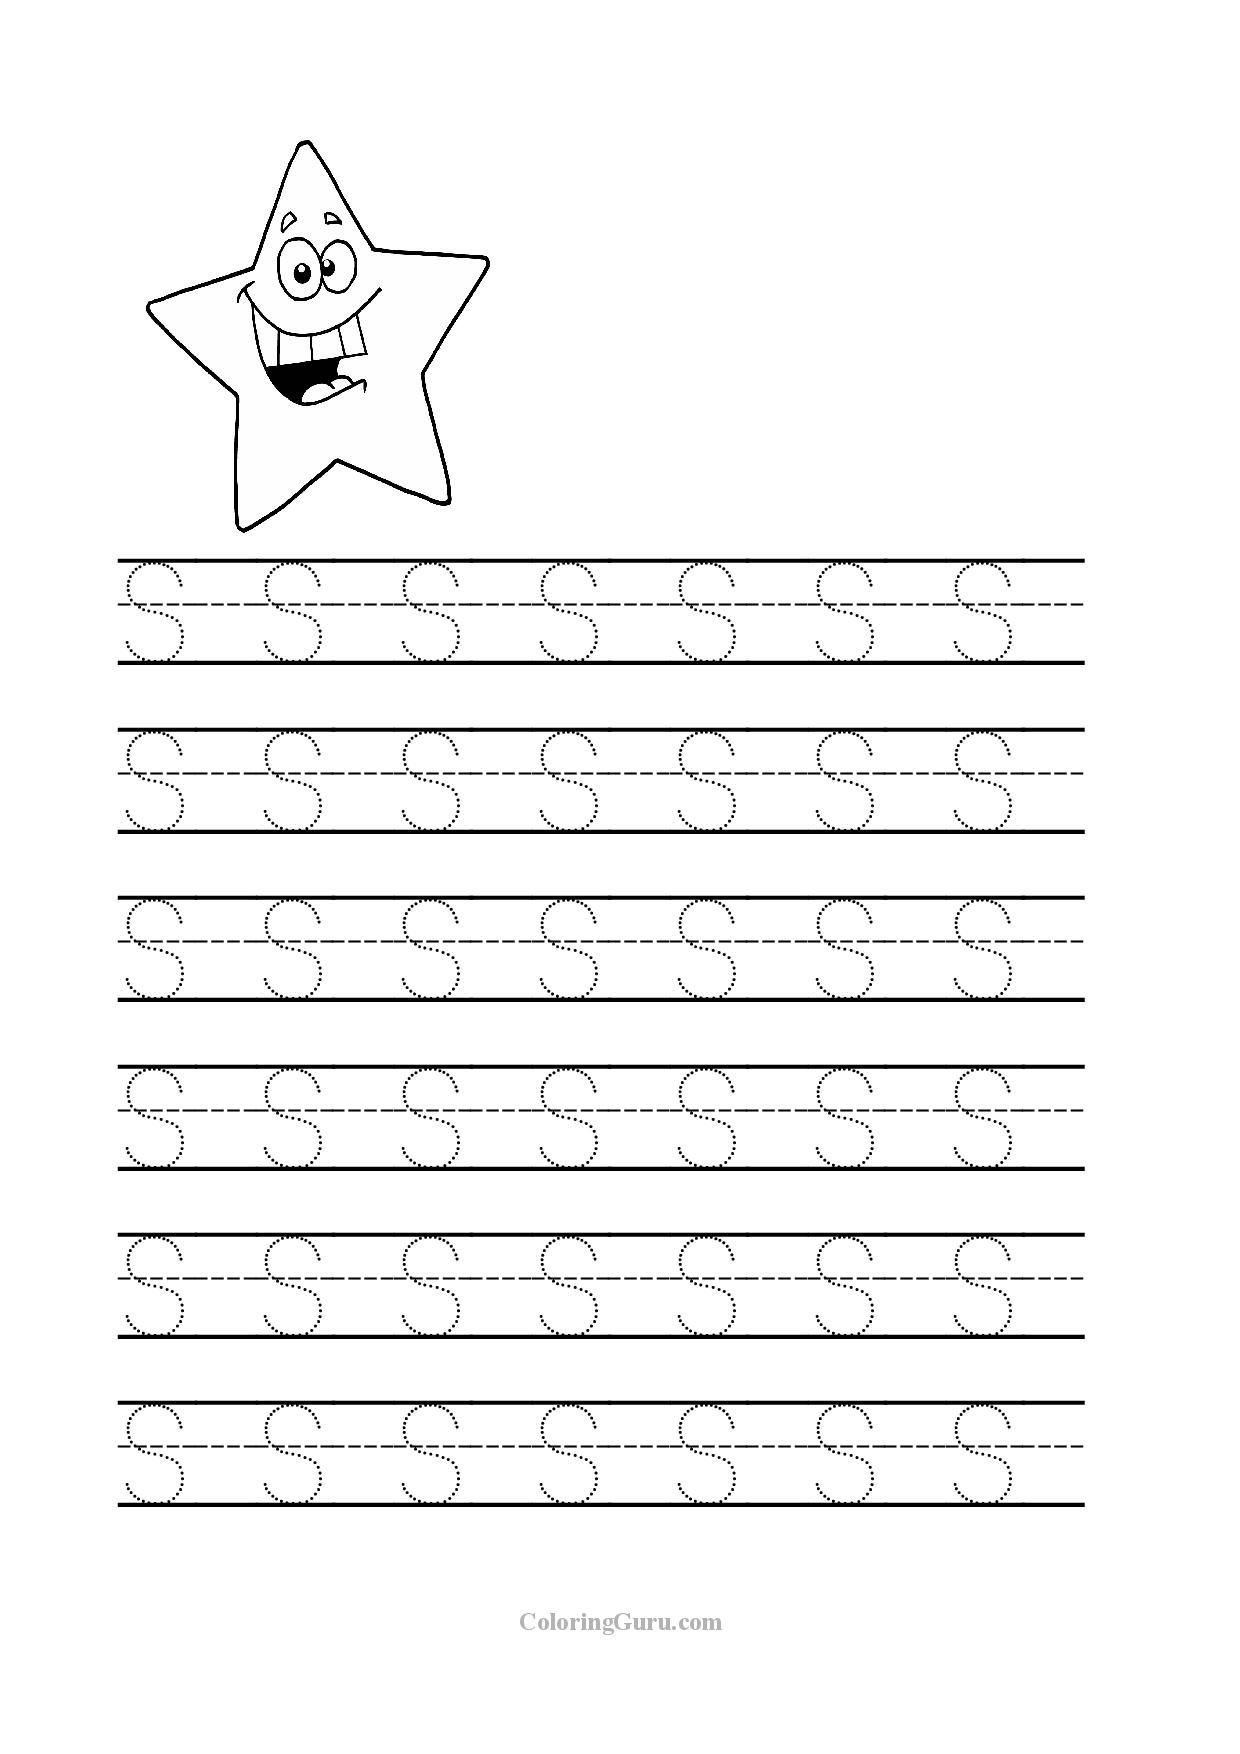 Free Printable Tracing letter S worksheets for preschool | Coloring ...